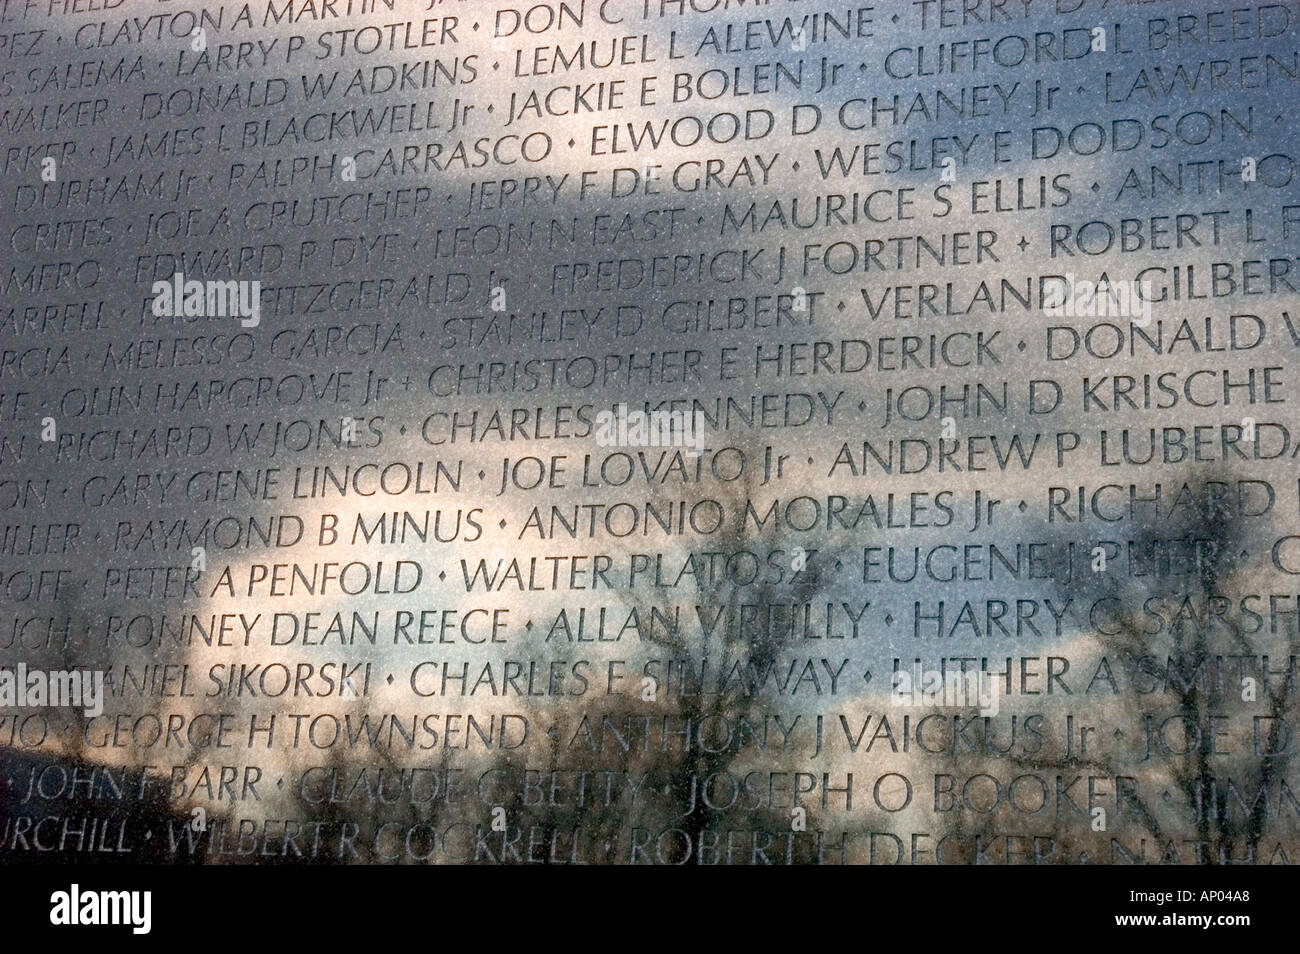 MAYA YING LIN Designed The VIETNAM VETERANS MEMORIAL Known As THE WALL  Listing The Names Of All Who Died In The VIETNAM WAR WA